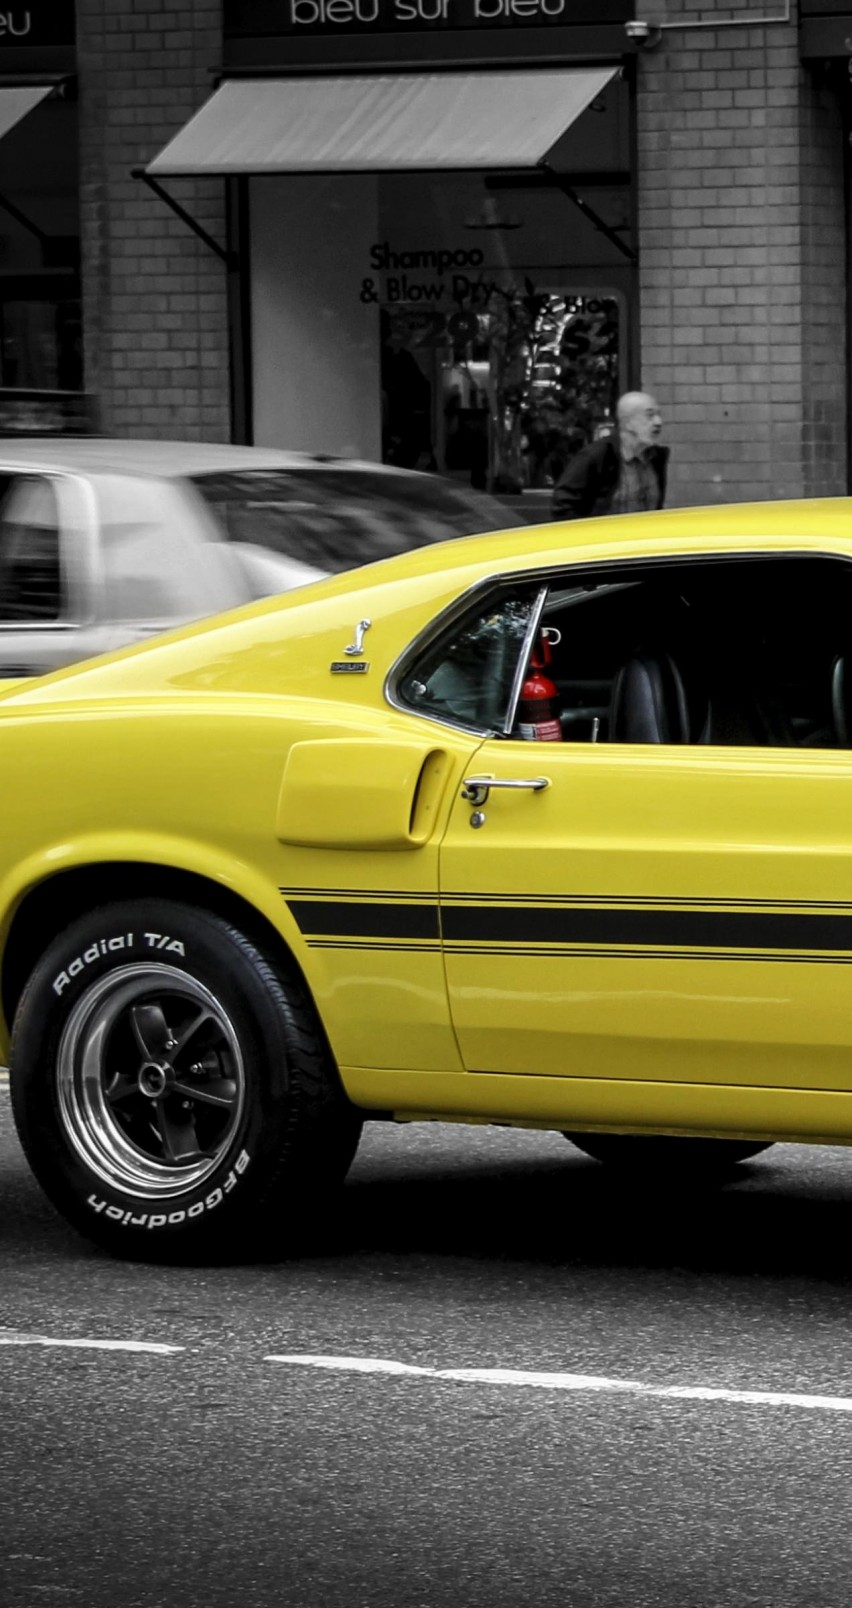 1969 Ford Mustang GT350 Wallpaper for Apple iPhone 6 / 6s